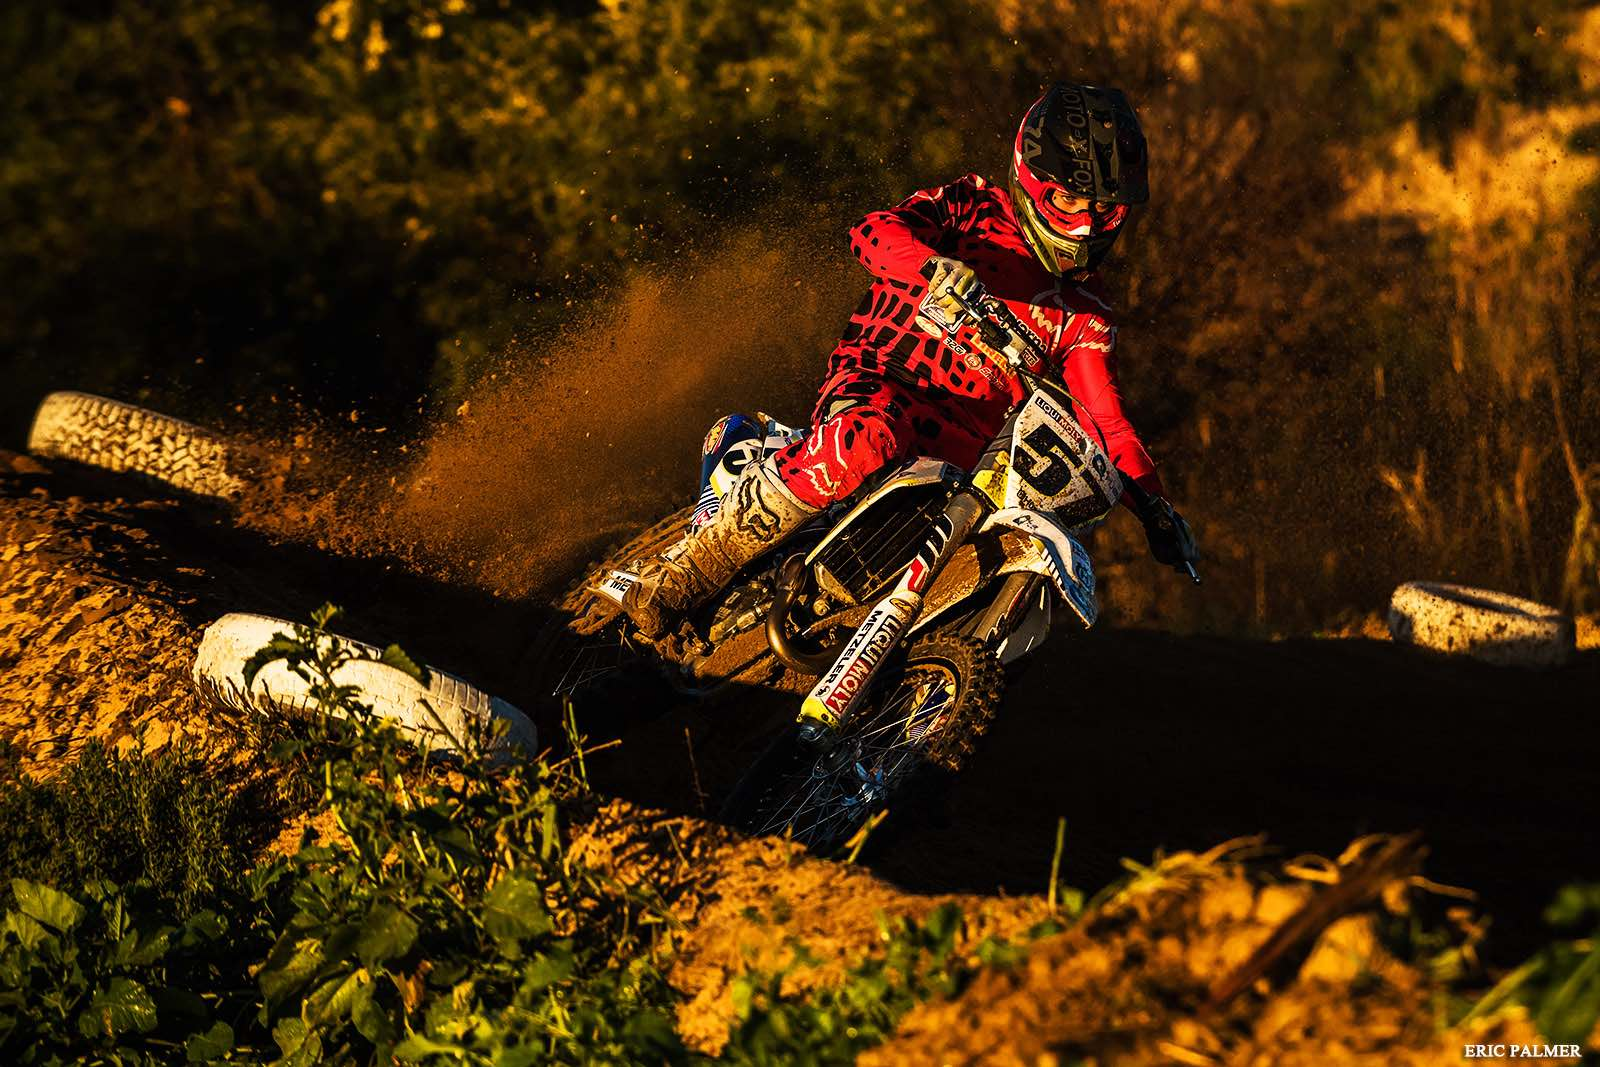 Maddy Malan racing in the MX Nationals in Cape Town